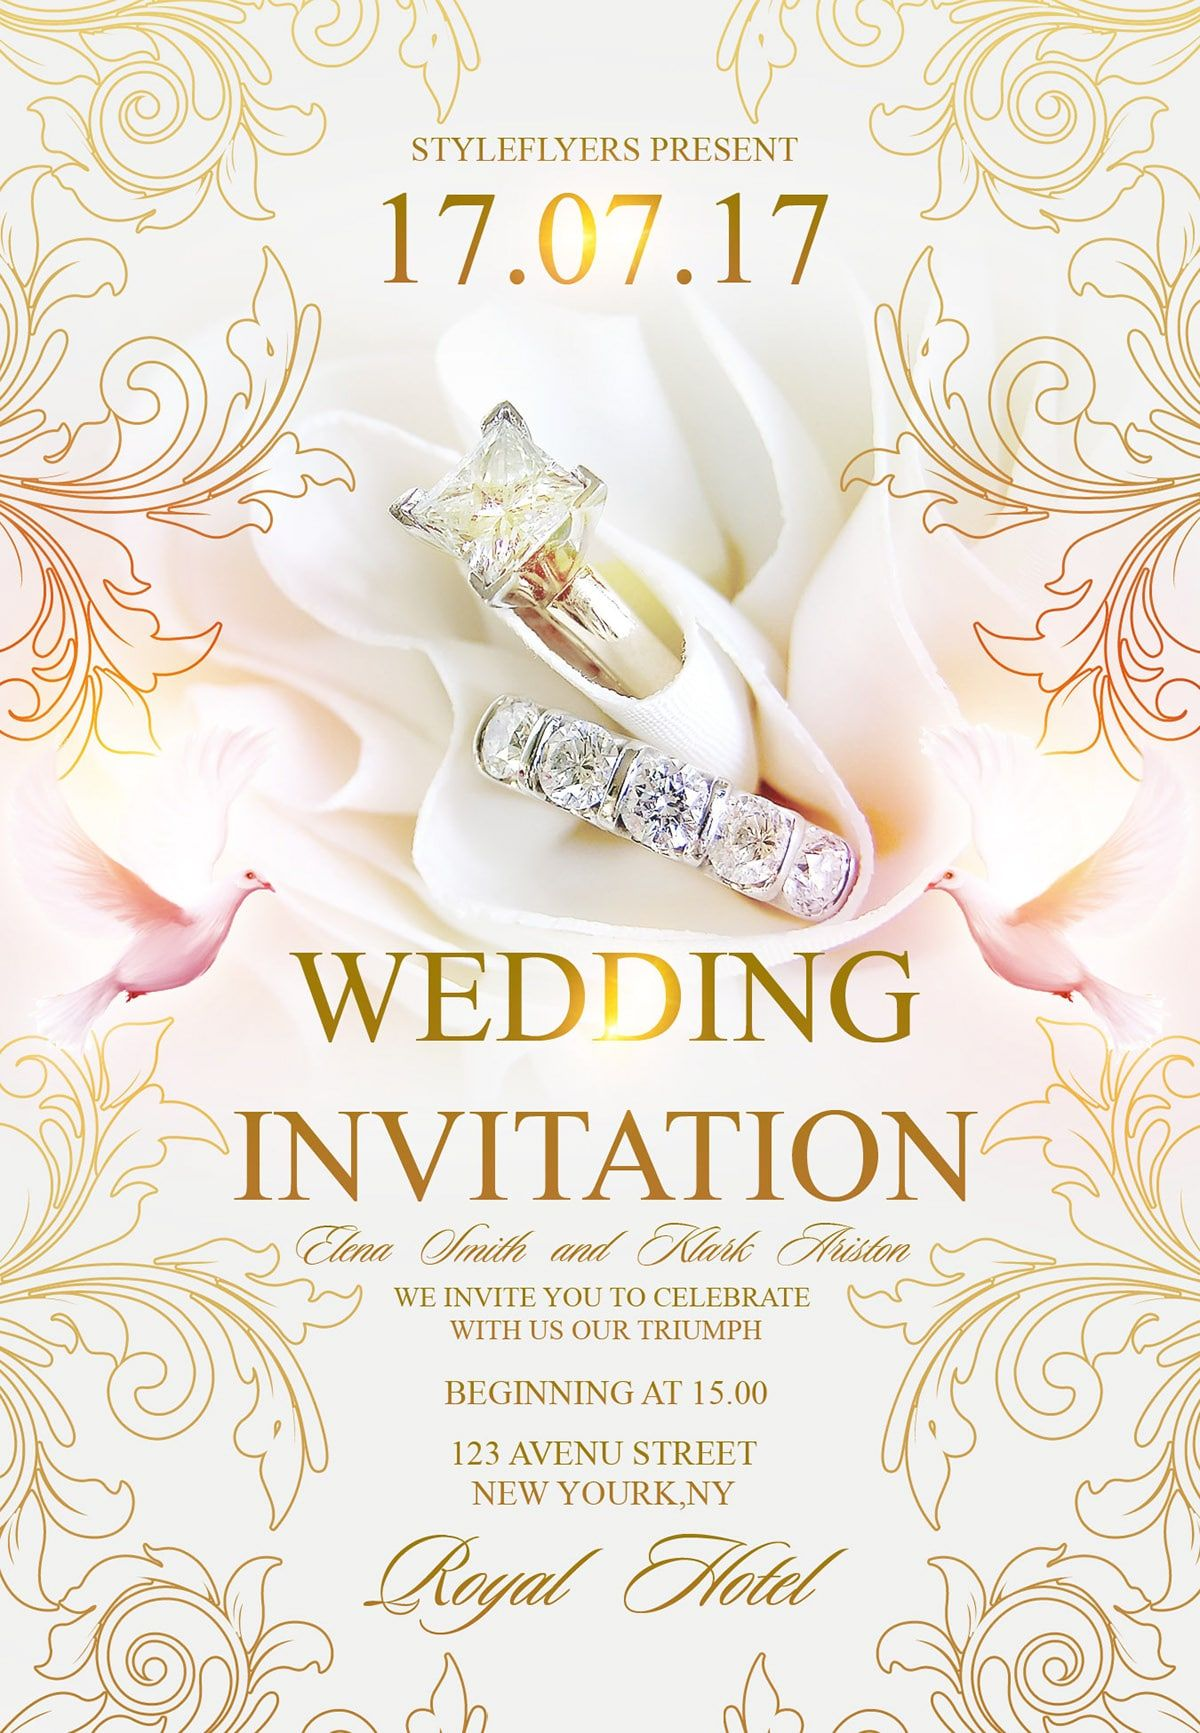 Wedding Invitation Download Free Psd Template Pixelsdesign Net Wedding Invitation Templates Free Wedding Invitations Wedding Invitations